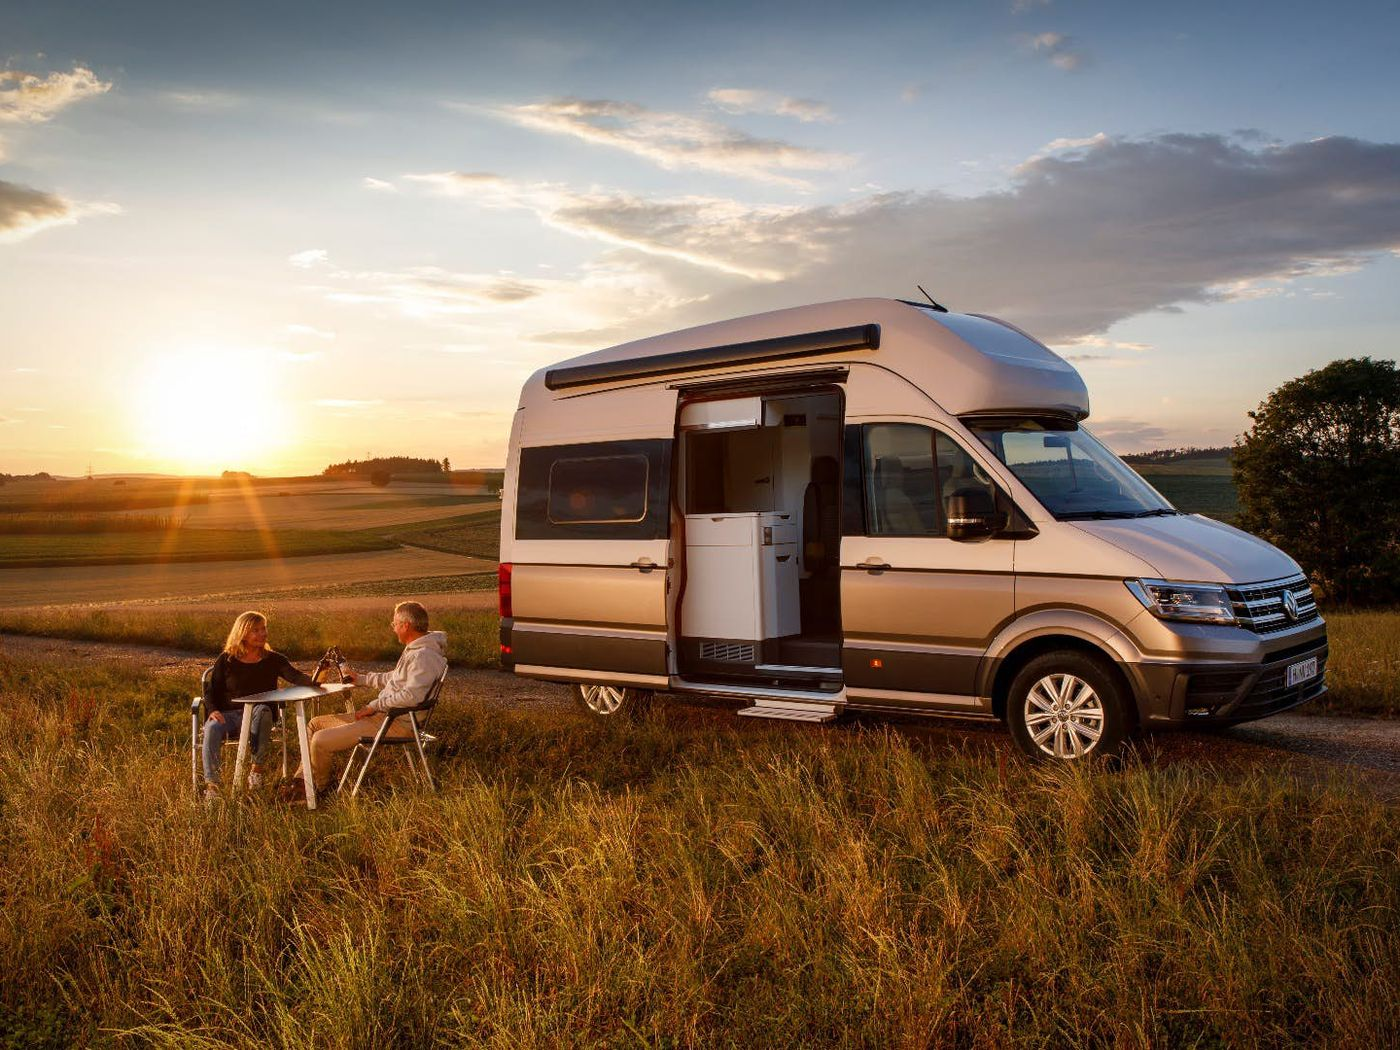 Astounding Volkswagen Van The New Grand California Builds On Iconic Squirreltailoven Fun Painted Chair Ideas Images Squirreltailovenorg